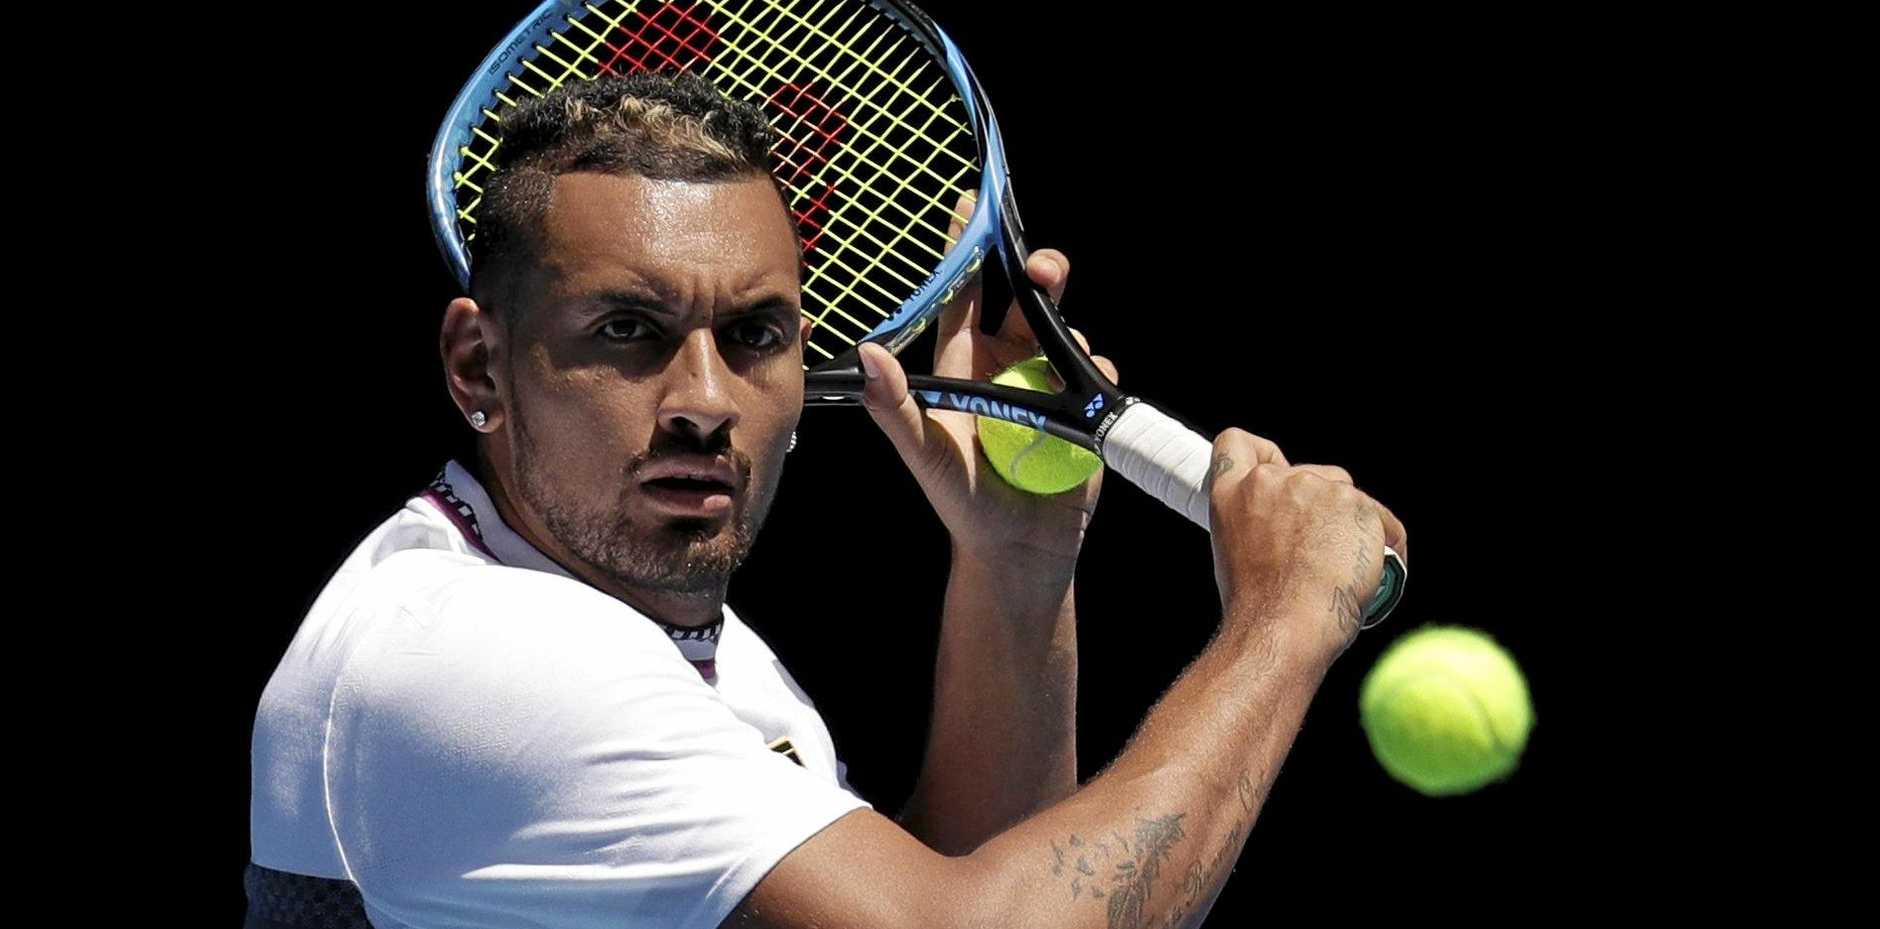 Nick Kyrgios has been sliding but remains Australia's best male hope of securing a grand slam tournament, Sam Groth believes. Picture: Kin Cheung/AP